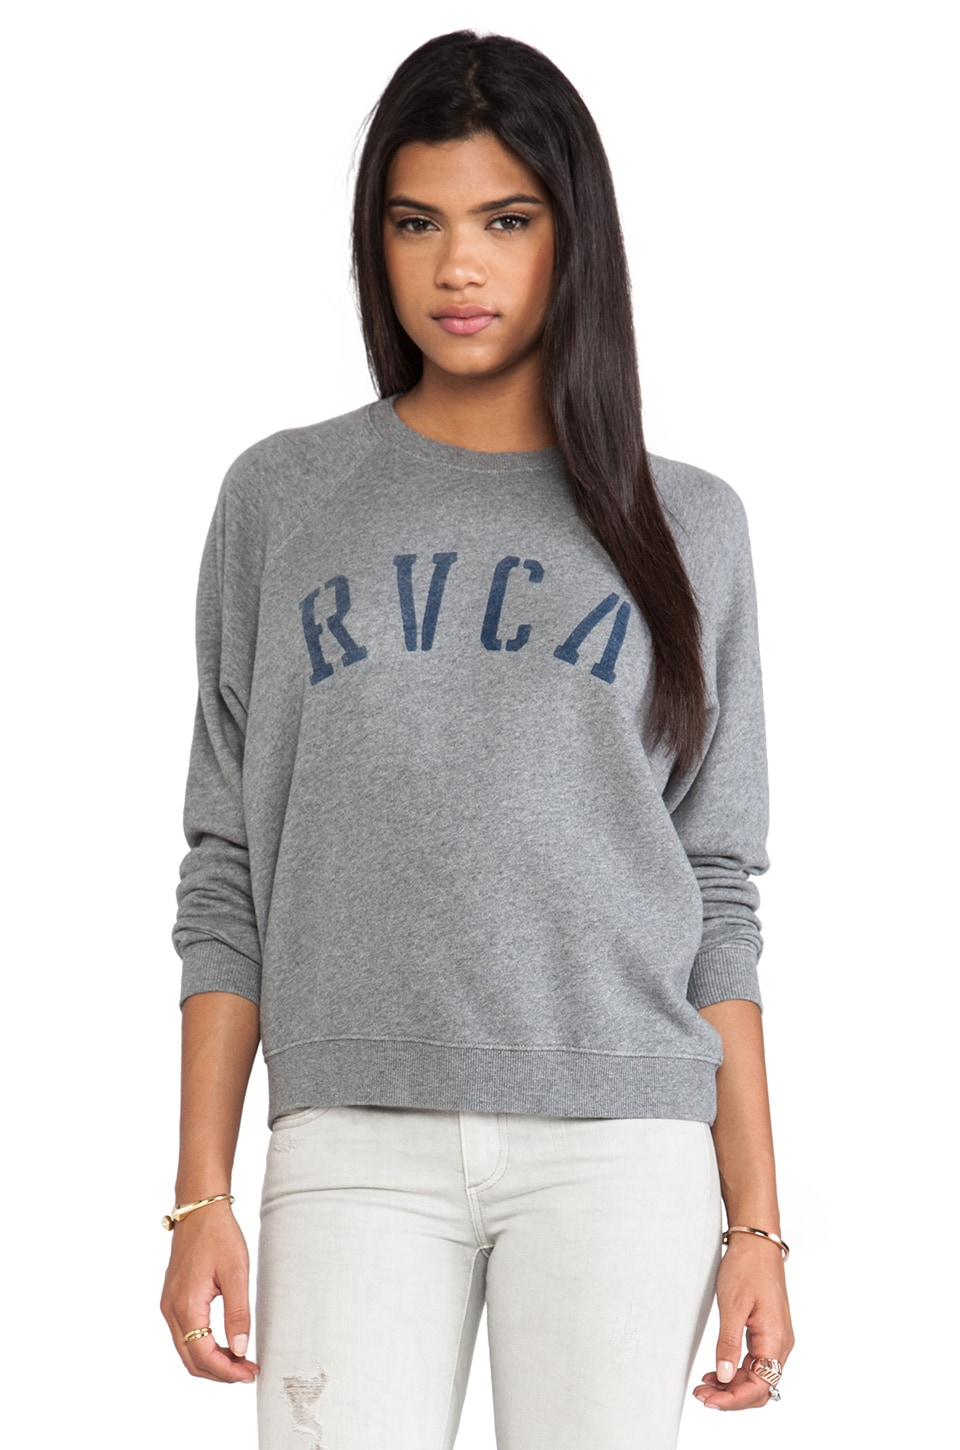 RVCA Department RVCA Sweatshirt in Gray Noise